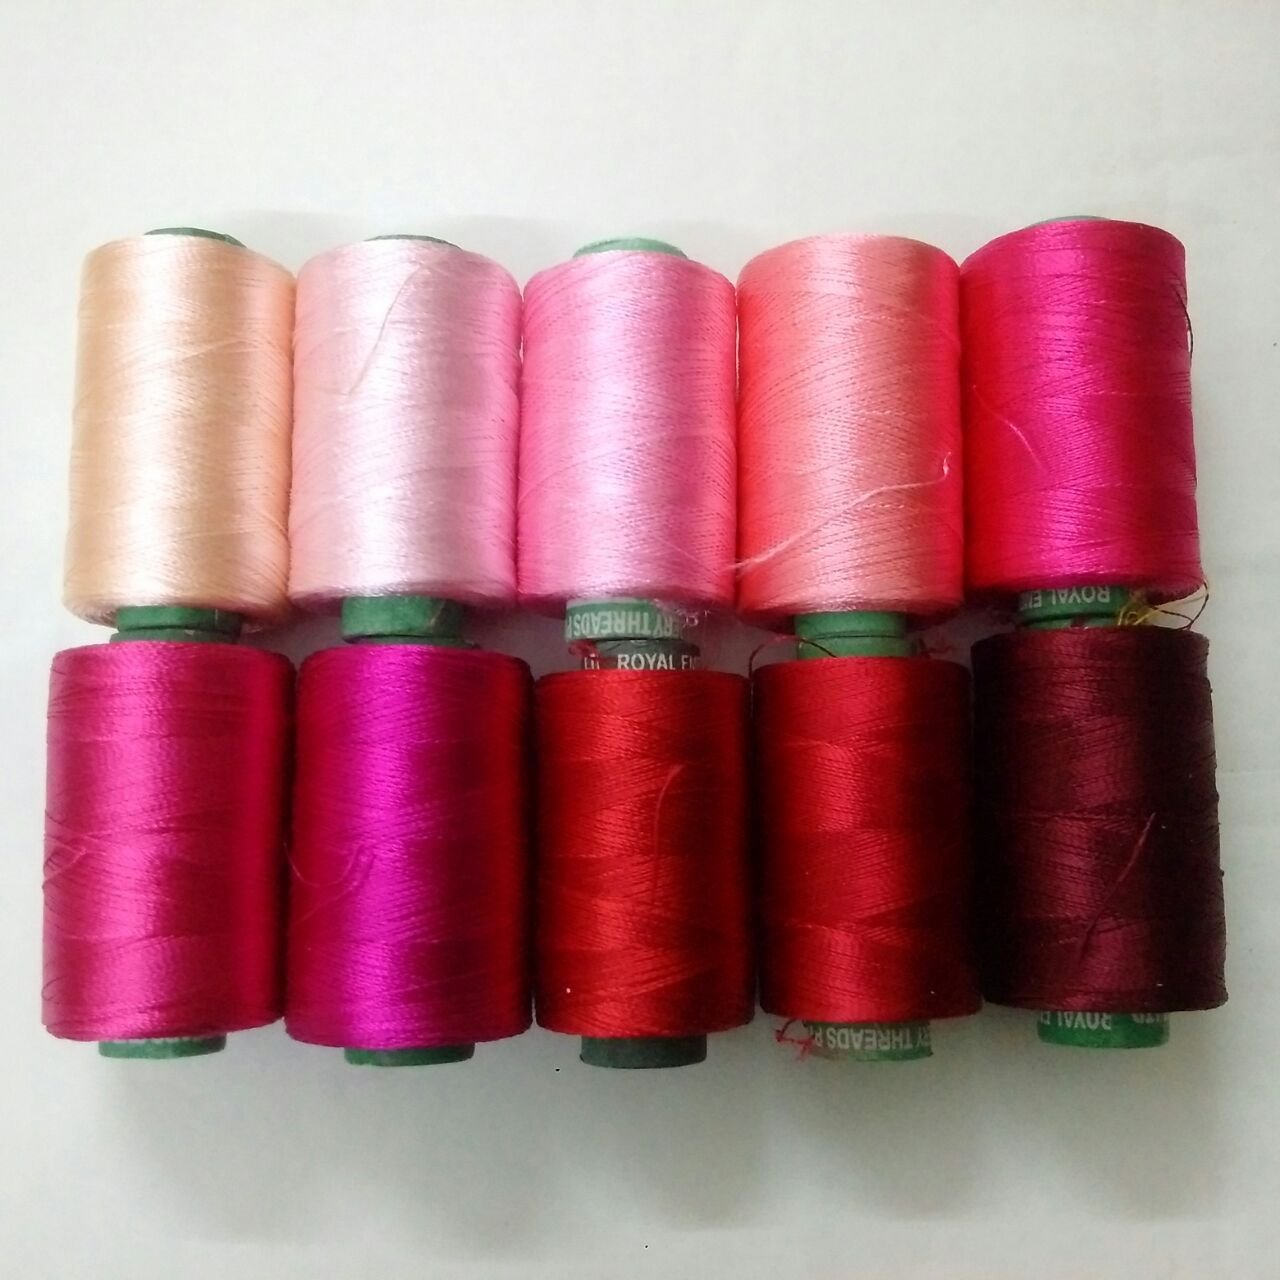 Pink - Set Lot of 10 Spools Tubes - 150/2 Denier Viscose Rayon Thread Yarn - Hand & Machine Embroidery Sewing Royal Embroidery Threads